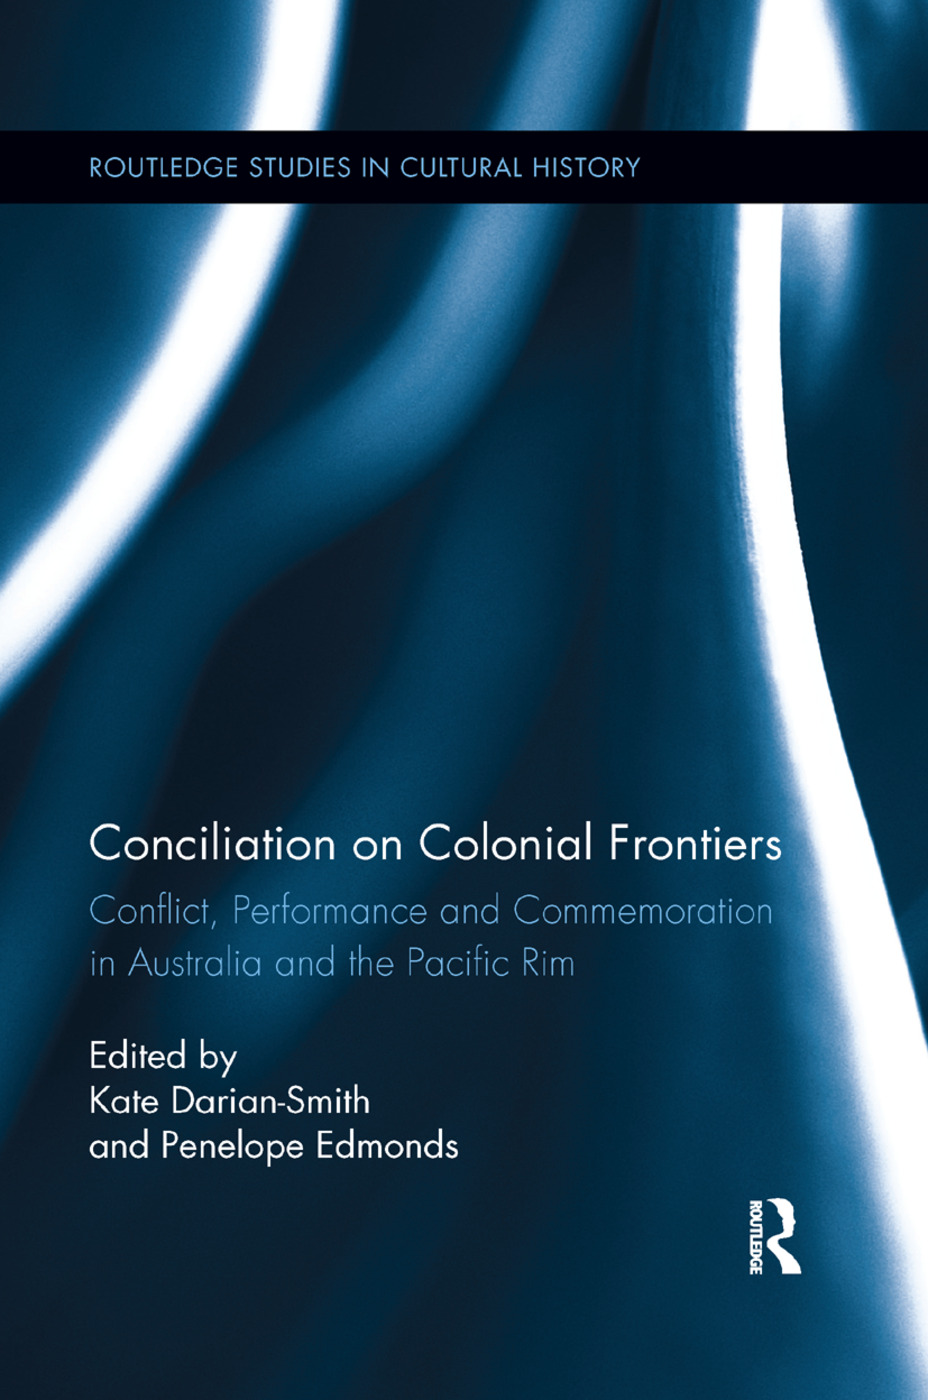 Conciliation on Colonial Frontiers: Conflict, Performance, and Commemoration in Australia and the Pacific Rim book cover